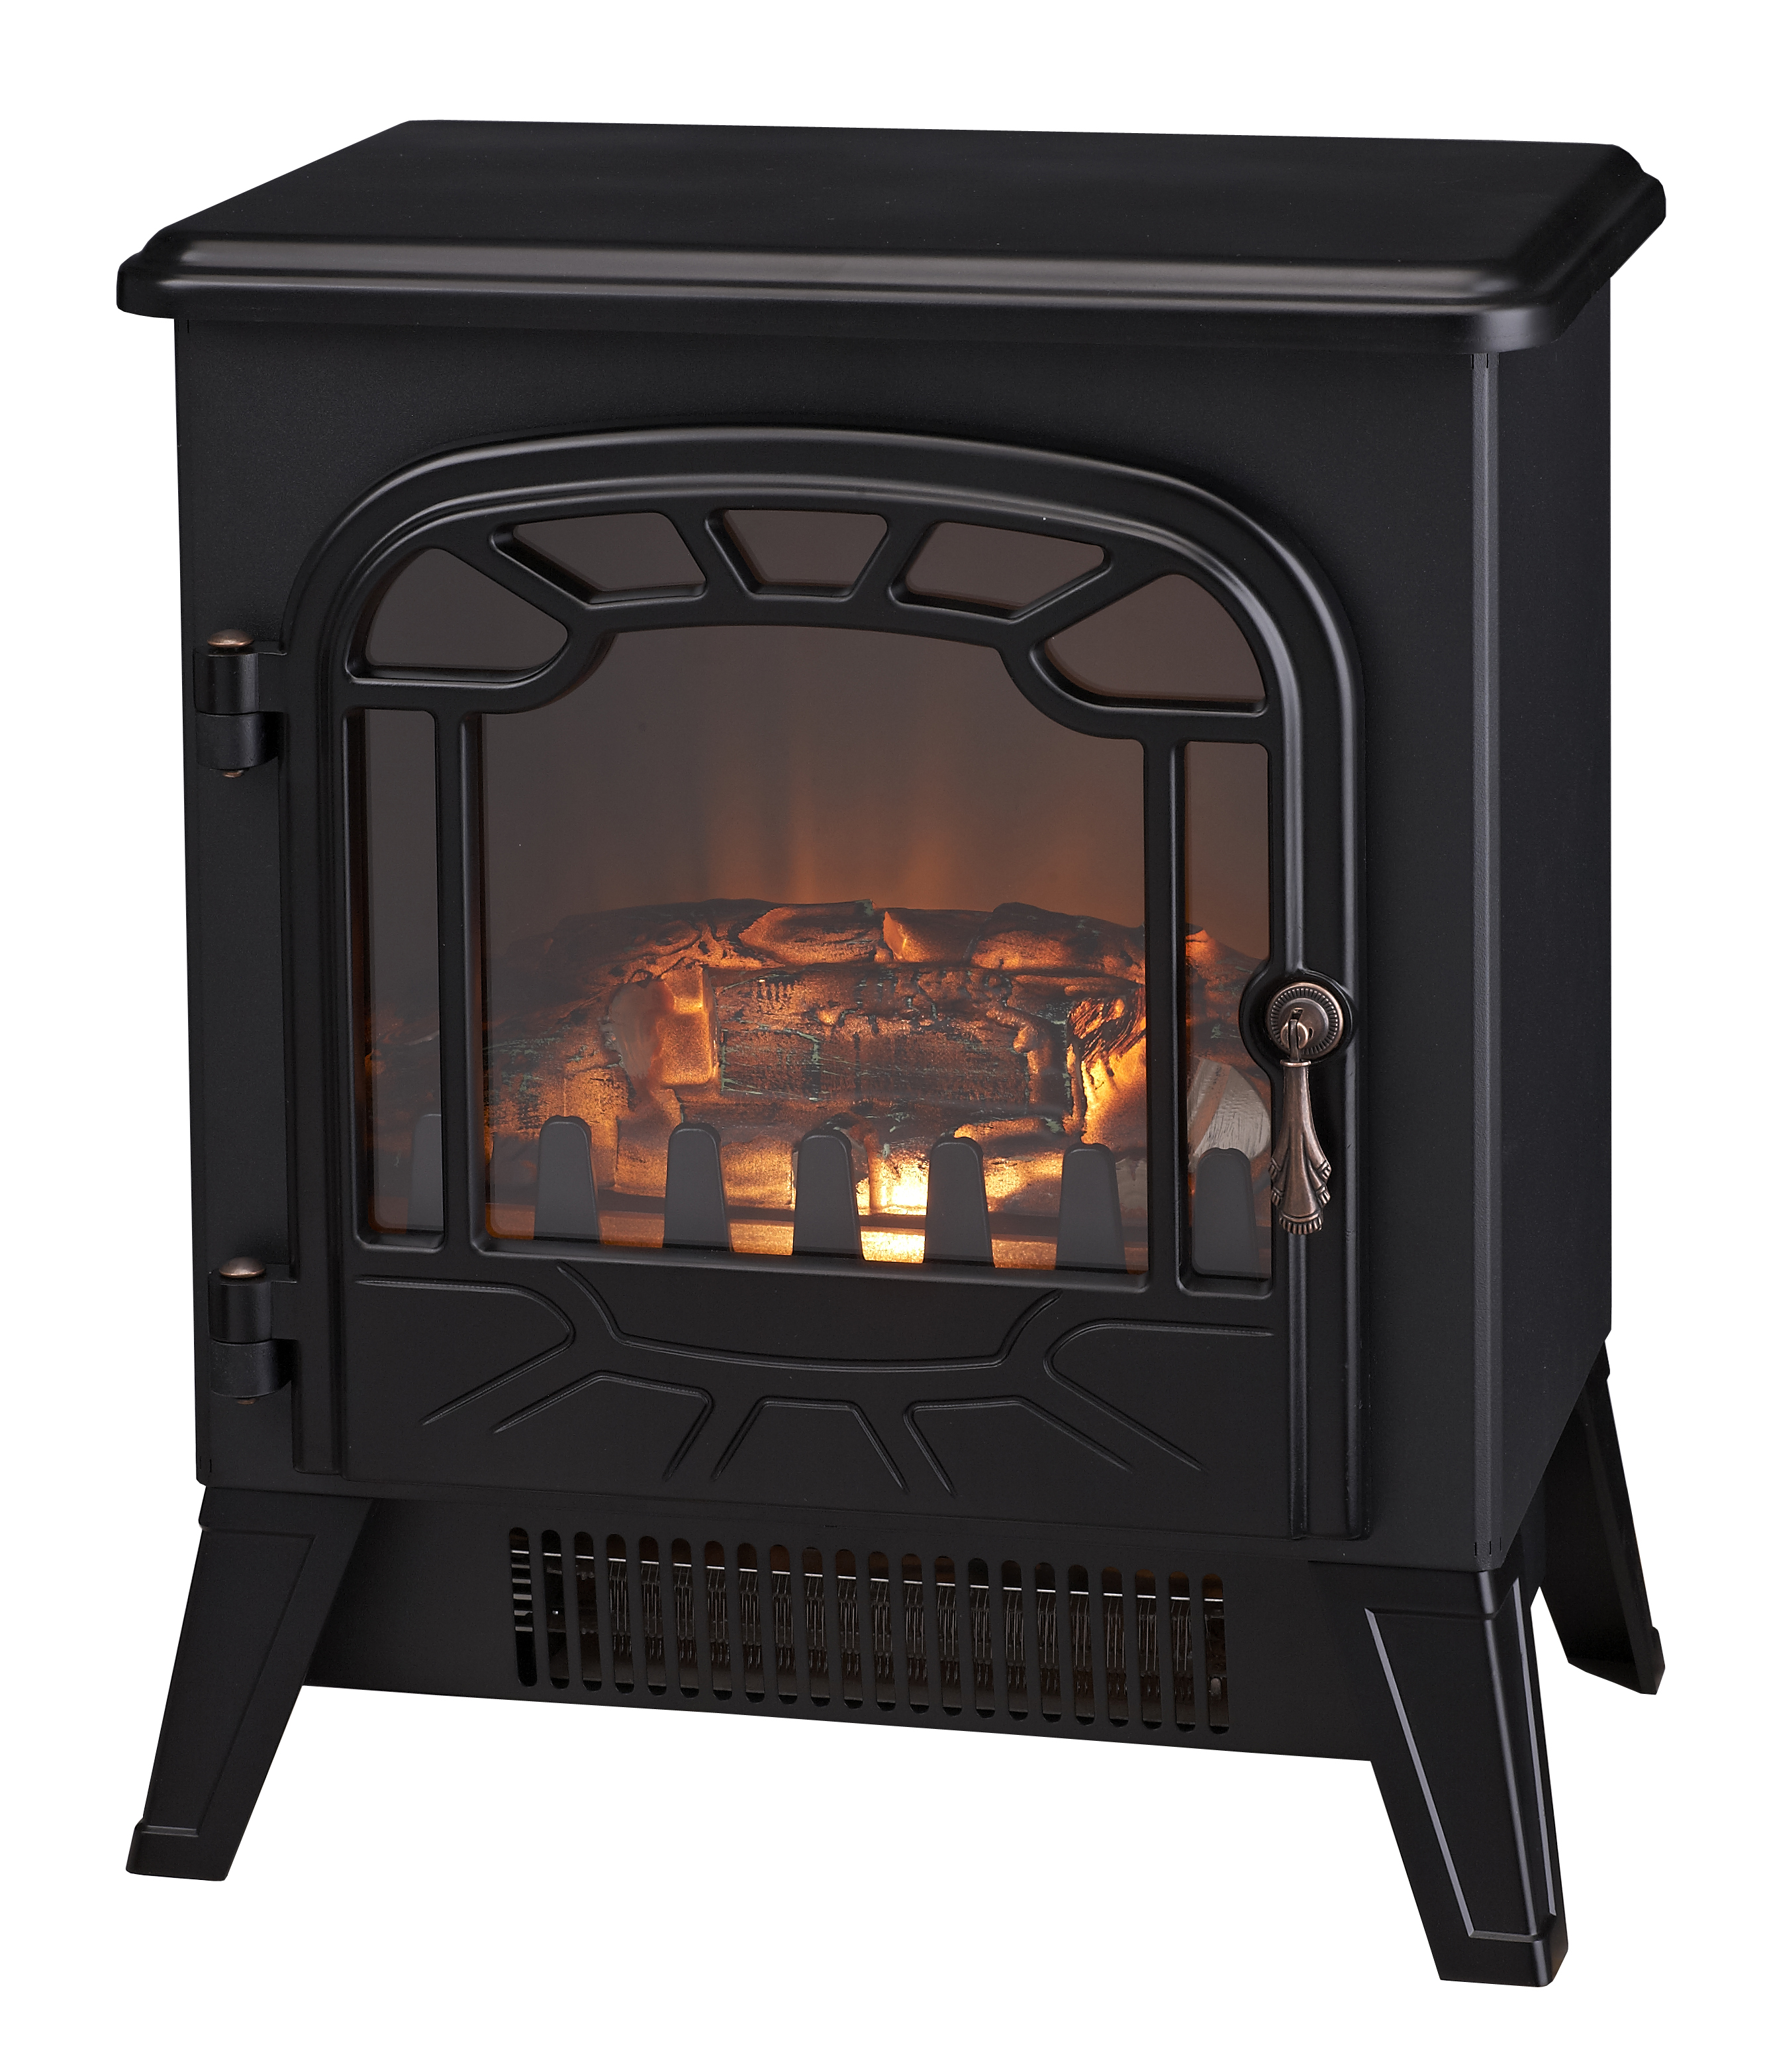 thumbnail 52 - Modern Electric Fireplace Heater Fire Place Flame Effect Stove Living Room